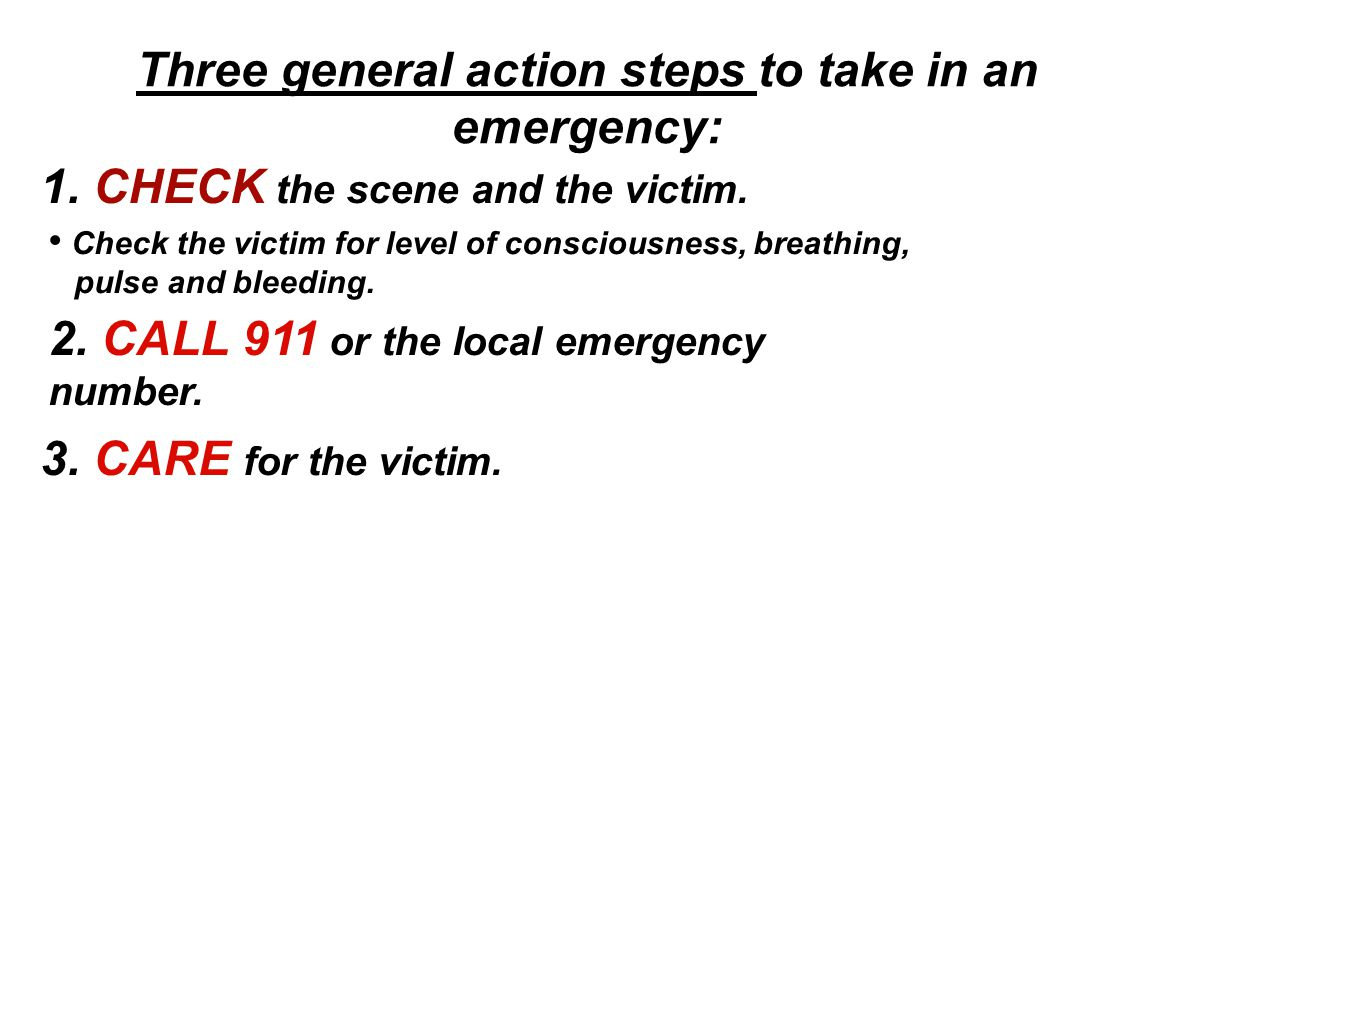 Three general action steps to take in an emergency: